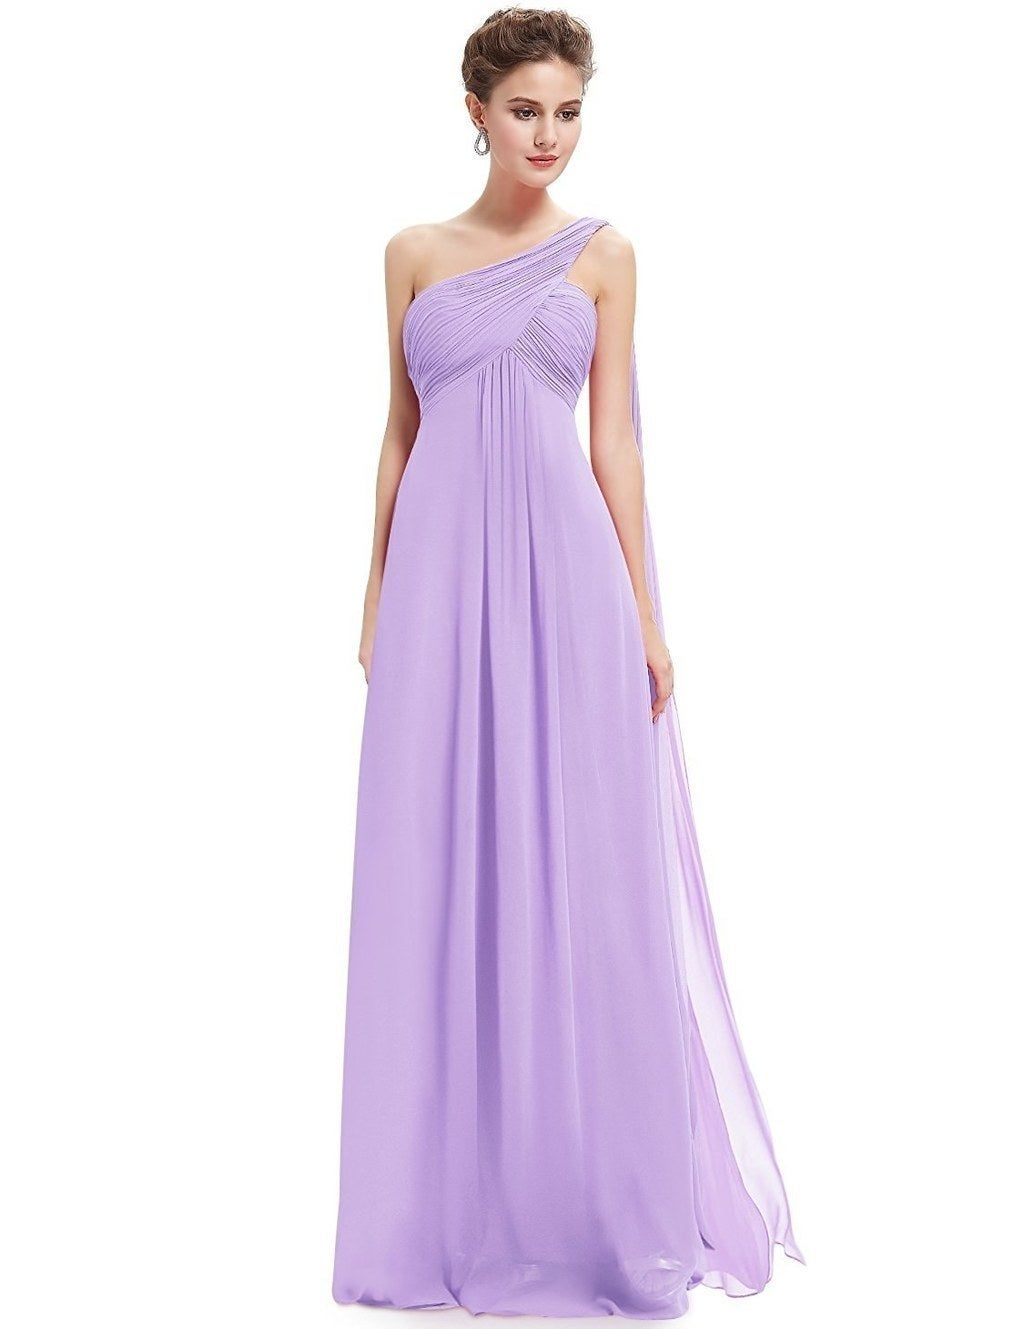 34 prom dresses you can get on amazon that you'll actually want to